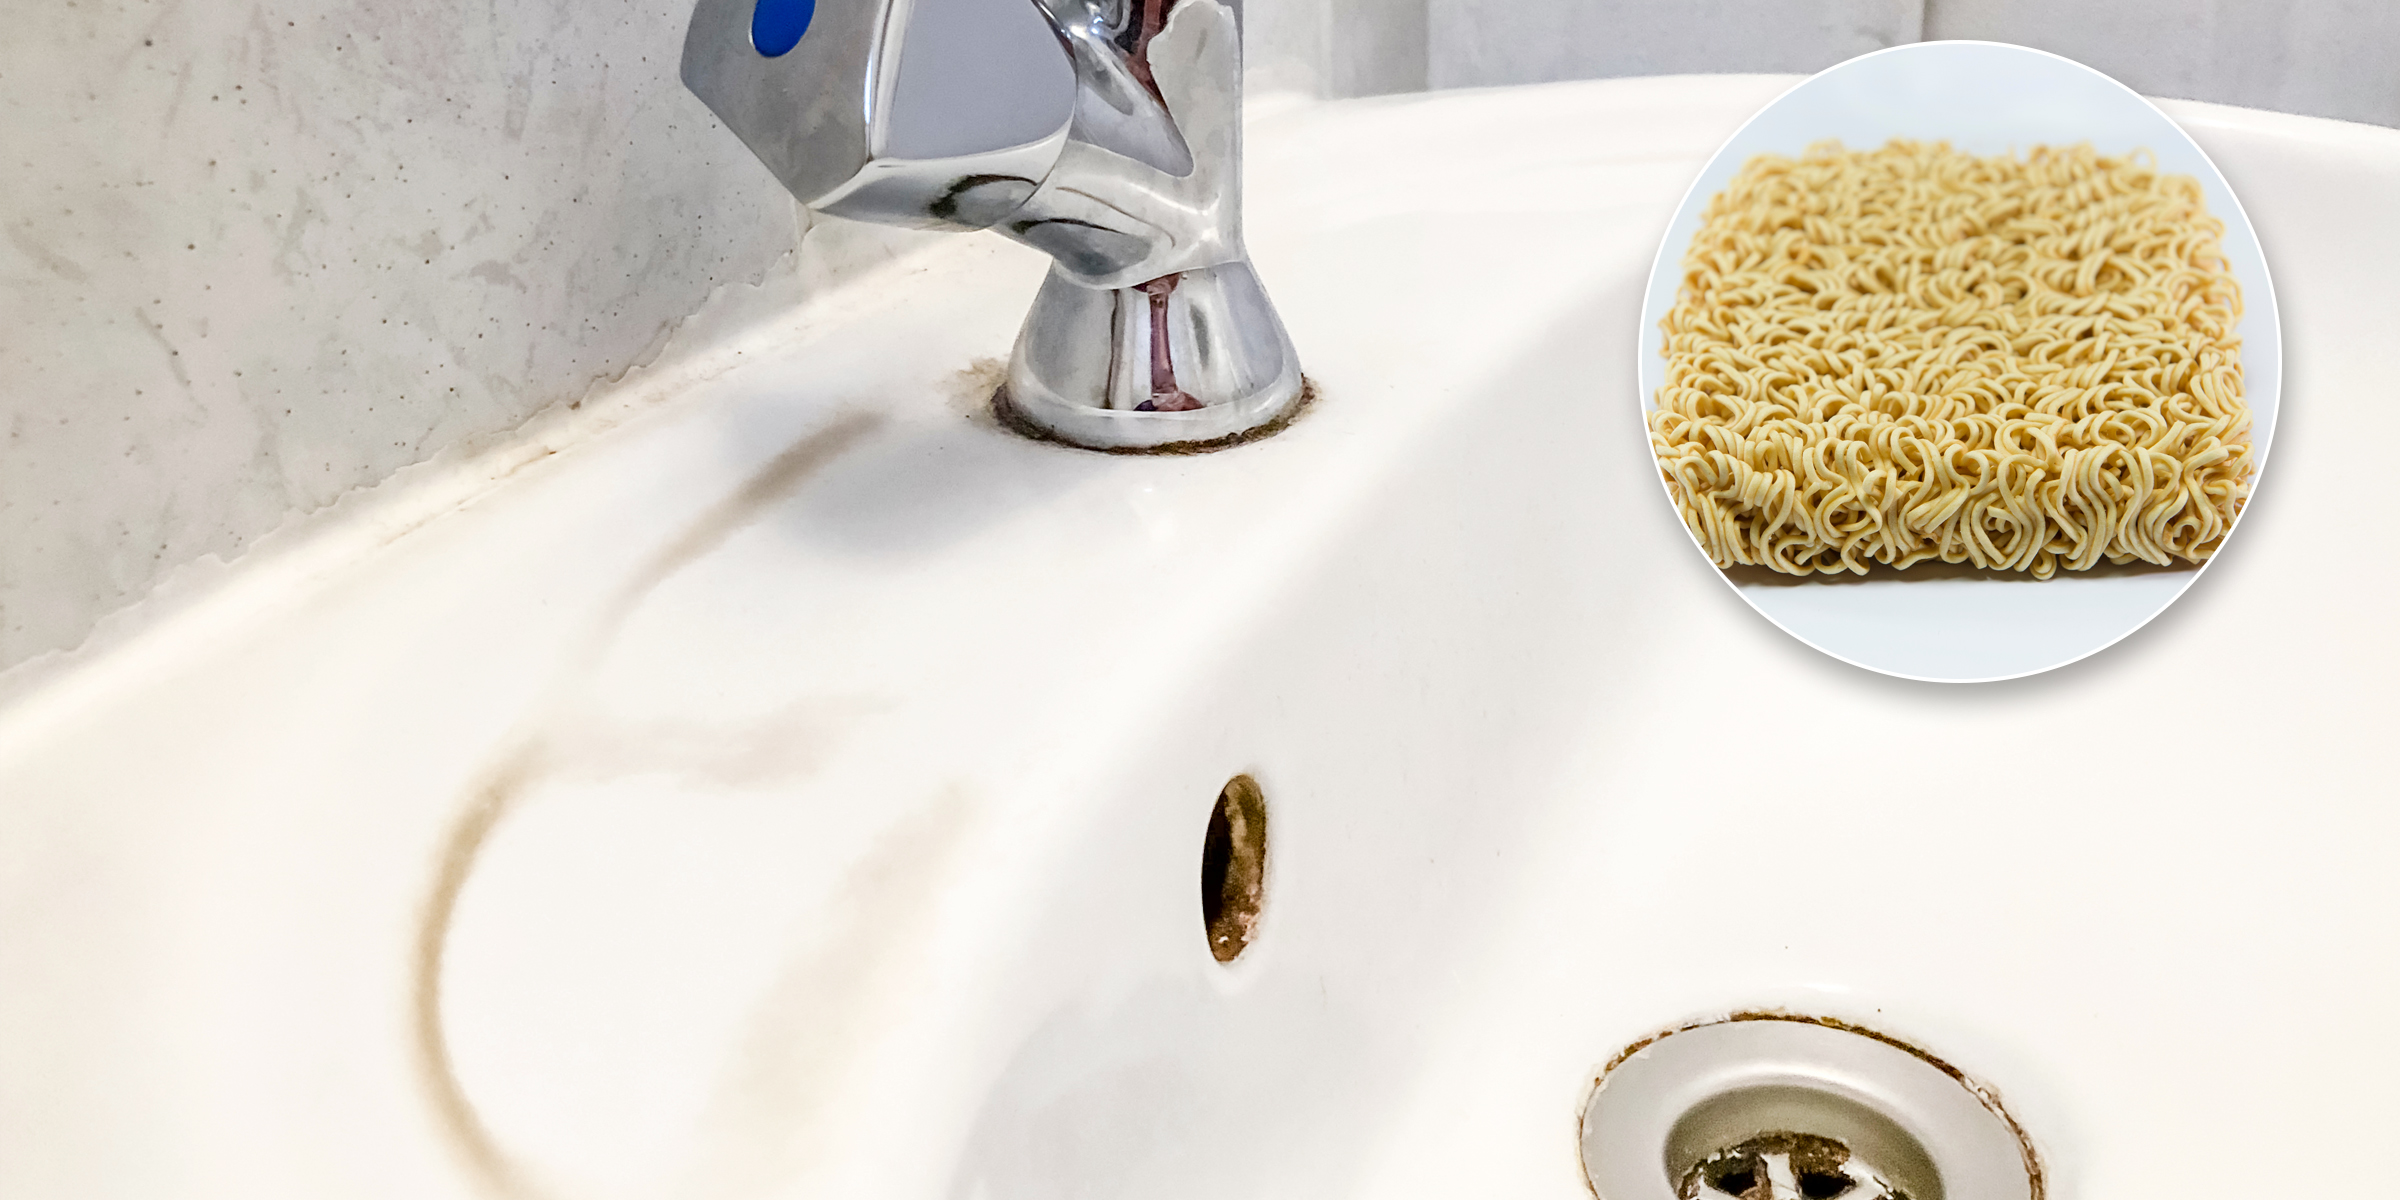 This Crazy Diy Hack For Repairing A Broken Sink Is Cracking Up The Internet